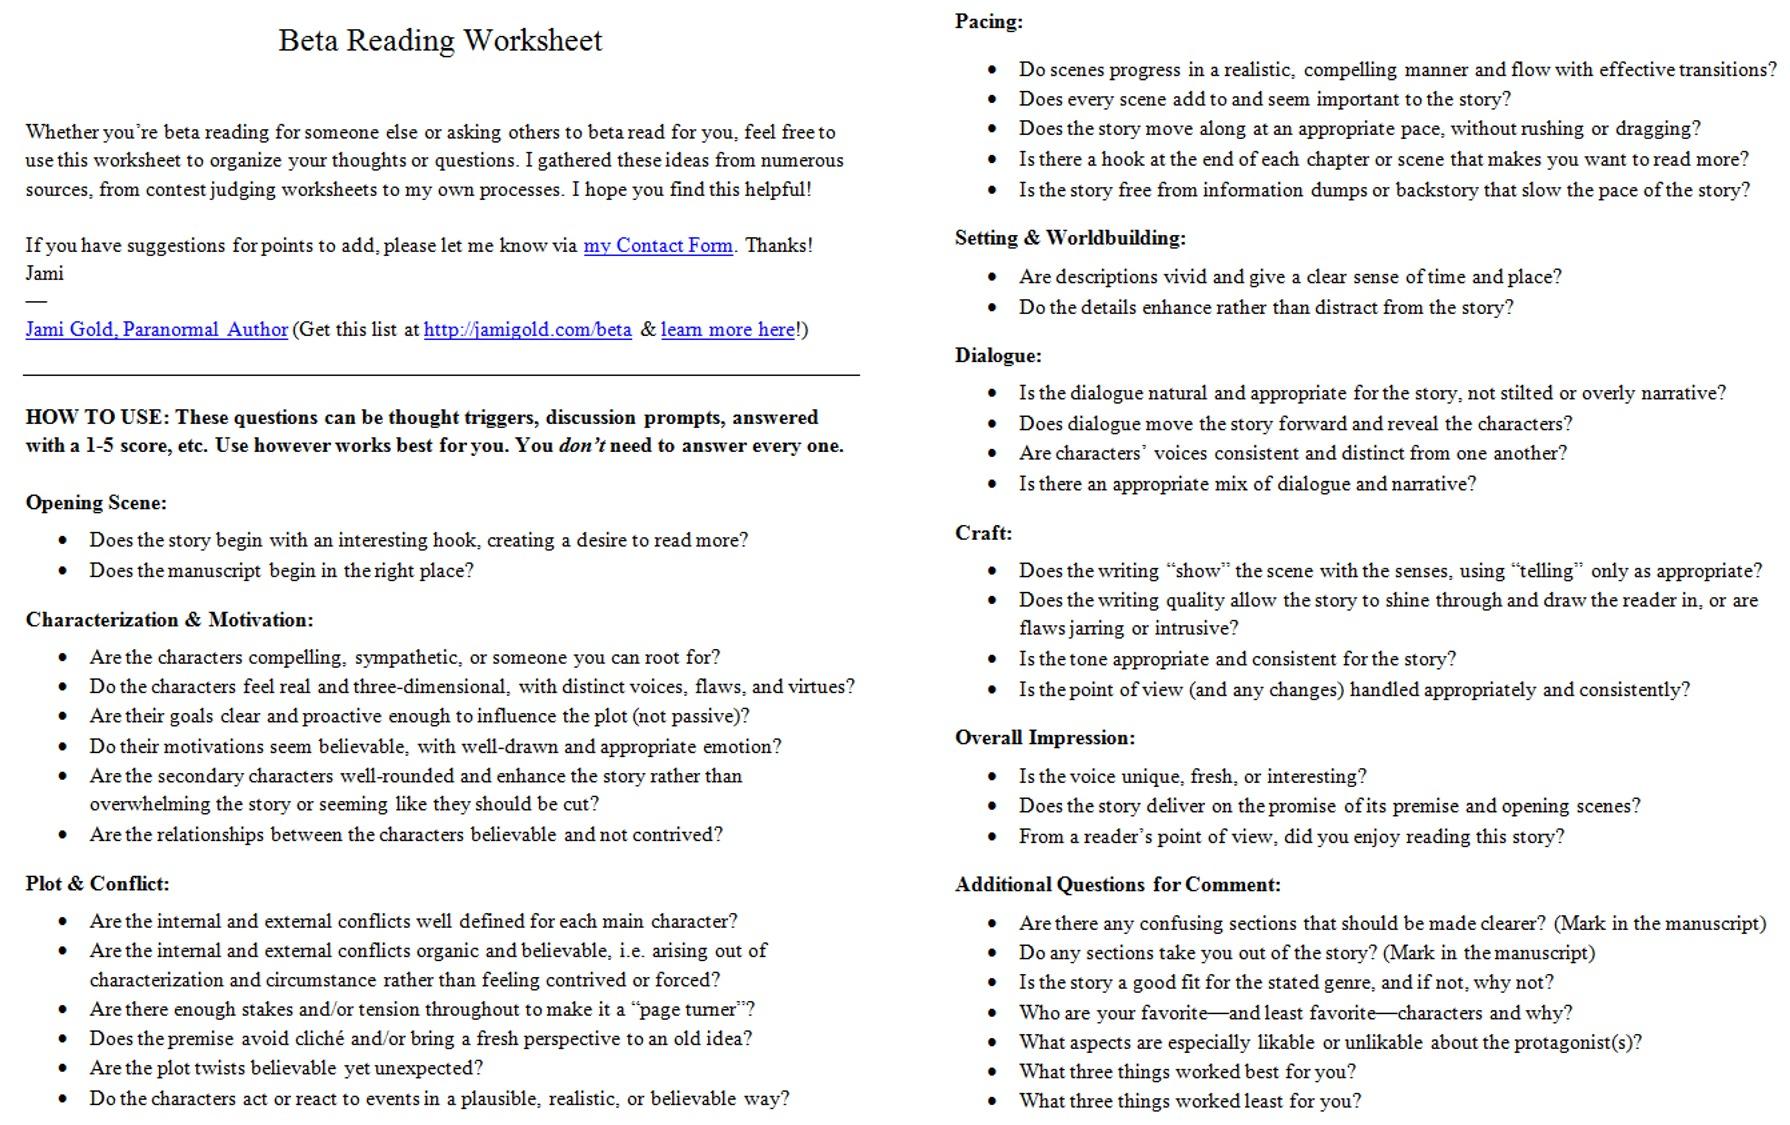 Aldiablosus  Ravishing Worksheets For Writers  Jami Gold Paranormal Author With Foxy Screen Shot Of The Twopage Beta Reading Worksheet With Endearing Nd Grade Reading Writing Worksheets Also Algebraic Fractions Worksheet In Addition Triangle Properties Worksheet And Mi Vida Loca Worksheets As Well As Unhide Worksheet In Excel  Additionally Adding Fractions With Different Denominators Worksheet From Jamigoldcom With Aldiablosus  Foxy Worksheets For Writers  Jami Gold Paranormal Author With Endearing Screen Shot Of The Twopage Beta Reading Worksheet And Ravishing Nd Grade Reading Writing Worksheets Also Algebraic Fractions Worksheet In Addition Triangle Properties Worksheet From Jamigoldcom